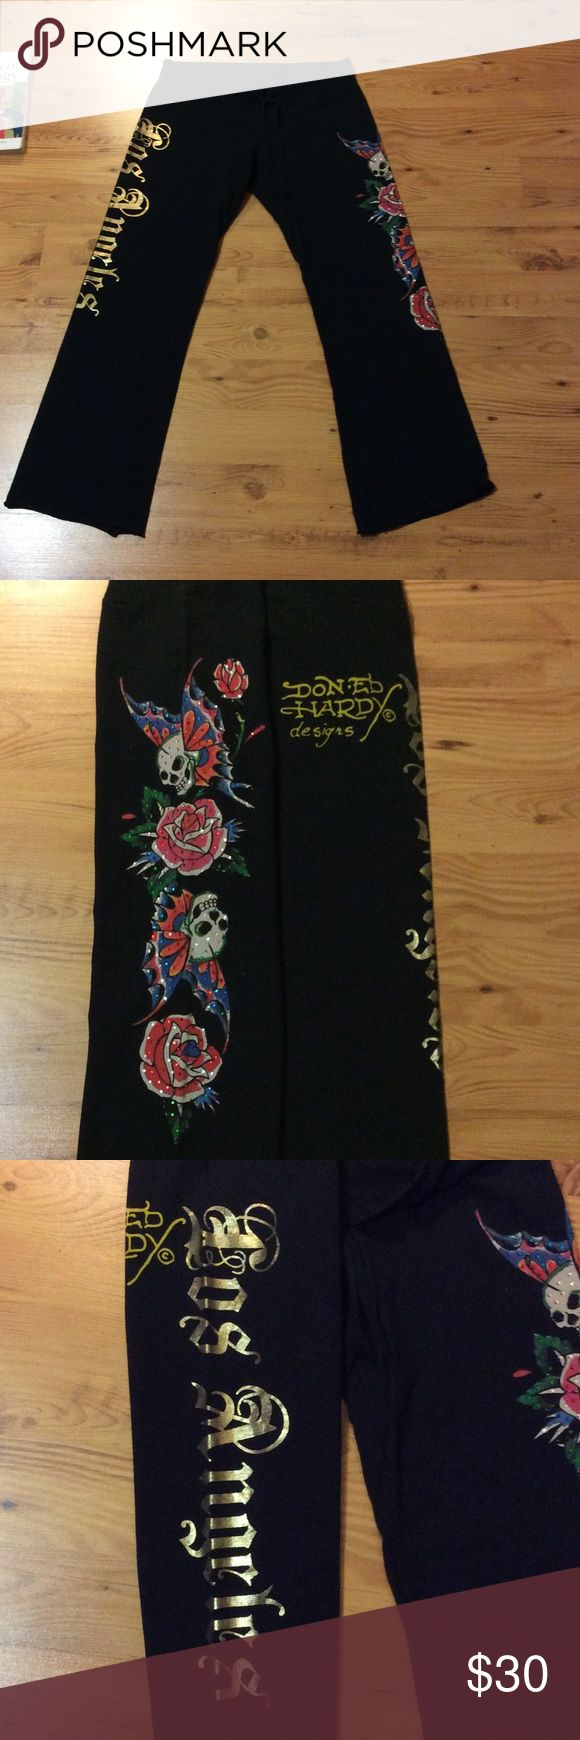 Ed Hardy Drawstring Pants 💋🌹☠❤️ Writing on butt says Don Ed Hardy Designs. One thigh is the signature skulls with bling and the other thigh says For Angels. Drawstring for adjustable waist band. 100% cotton! In like new condition! Ed Hardy Pants Track Pants & Joggers